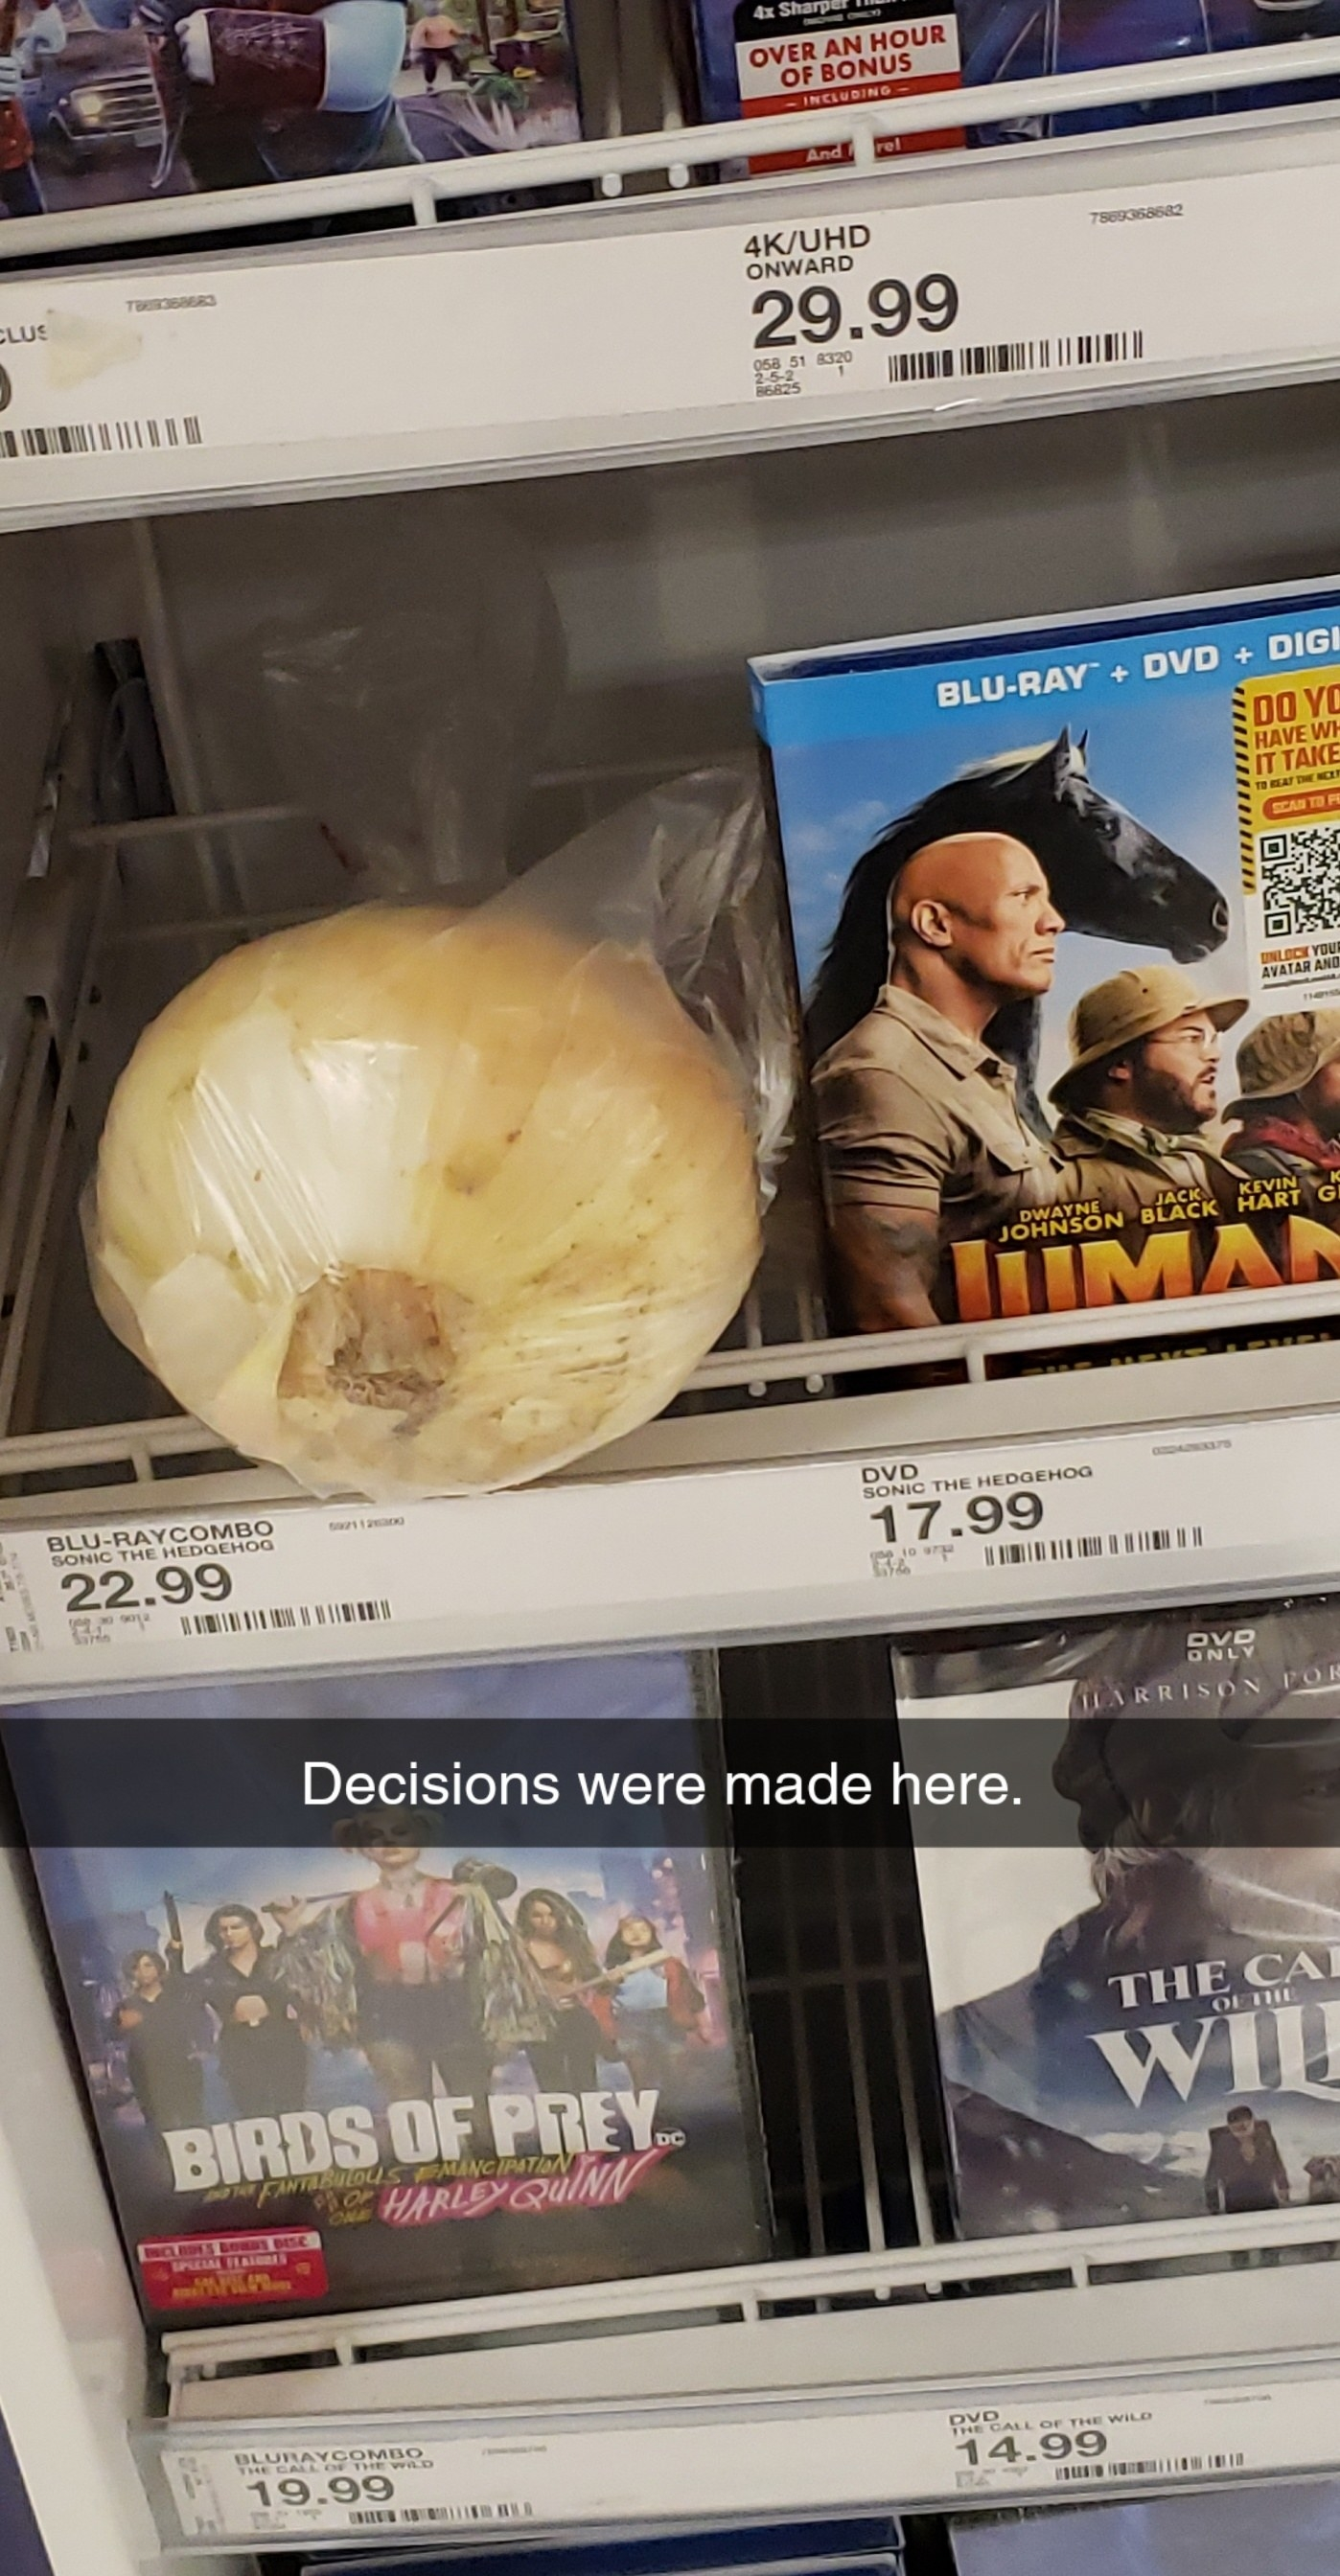 an onion in the movie section